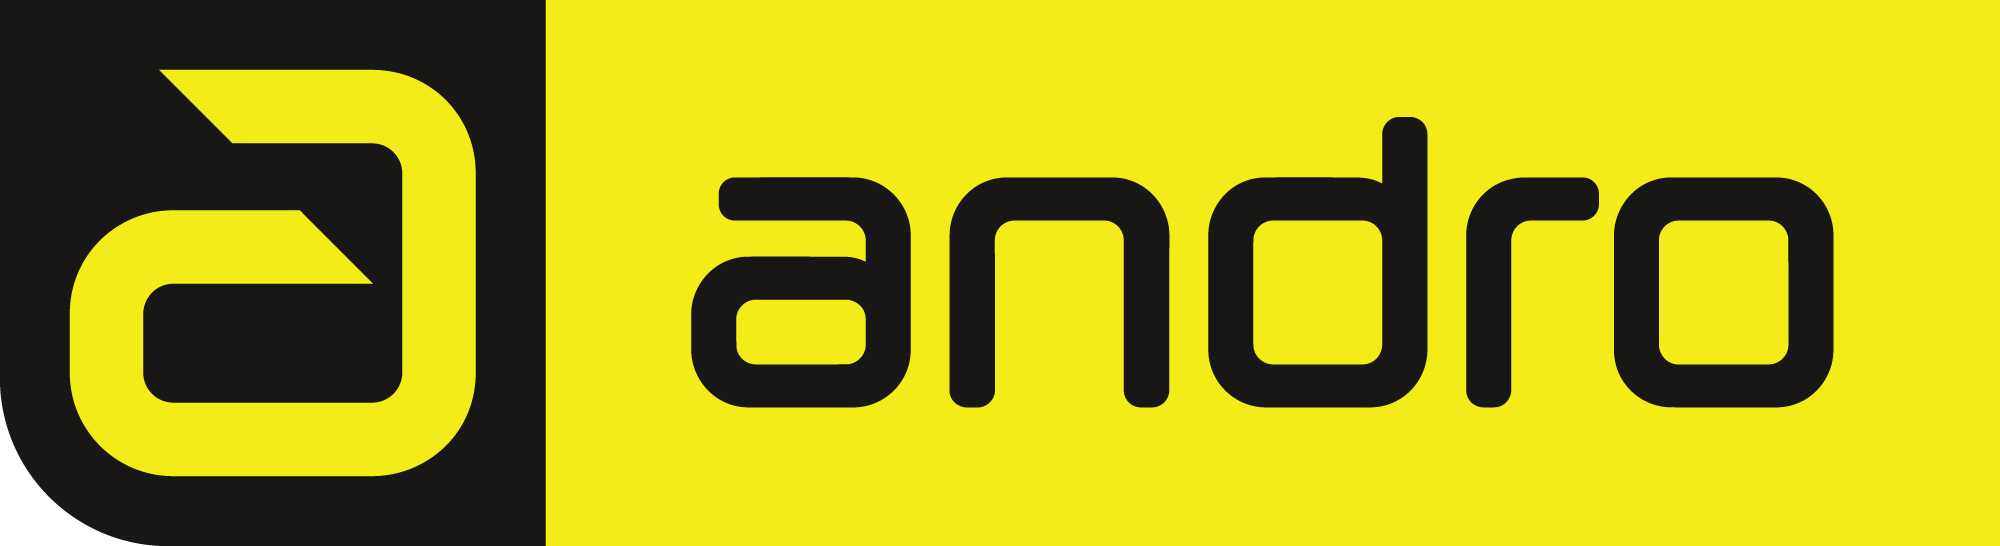 Andro logo